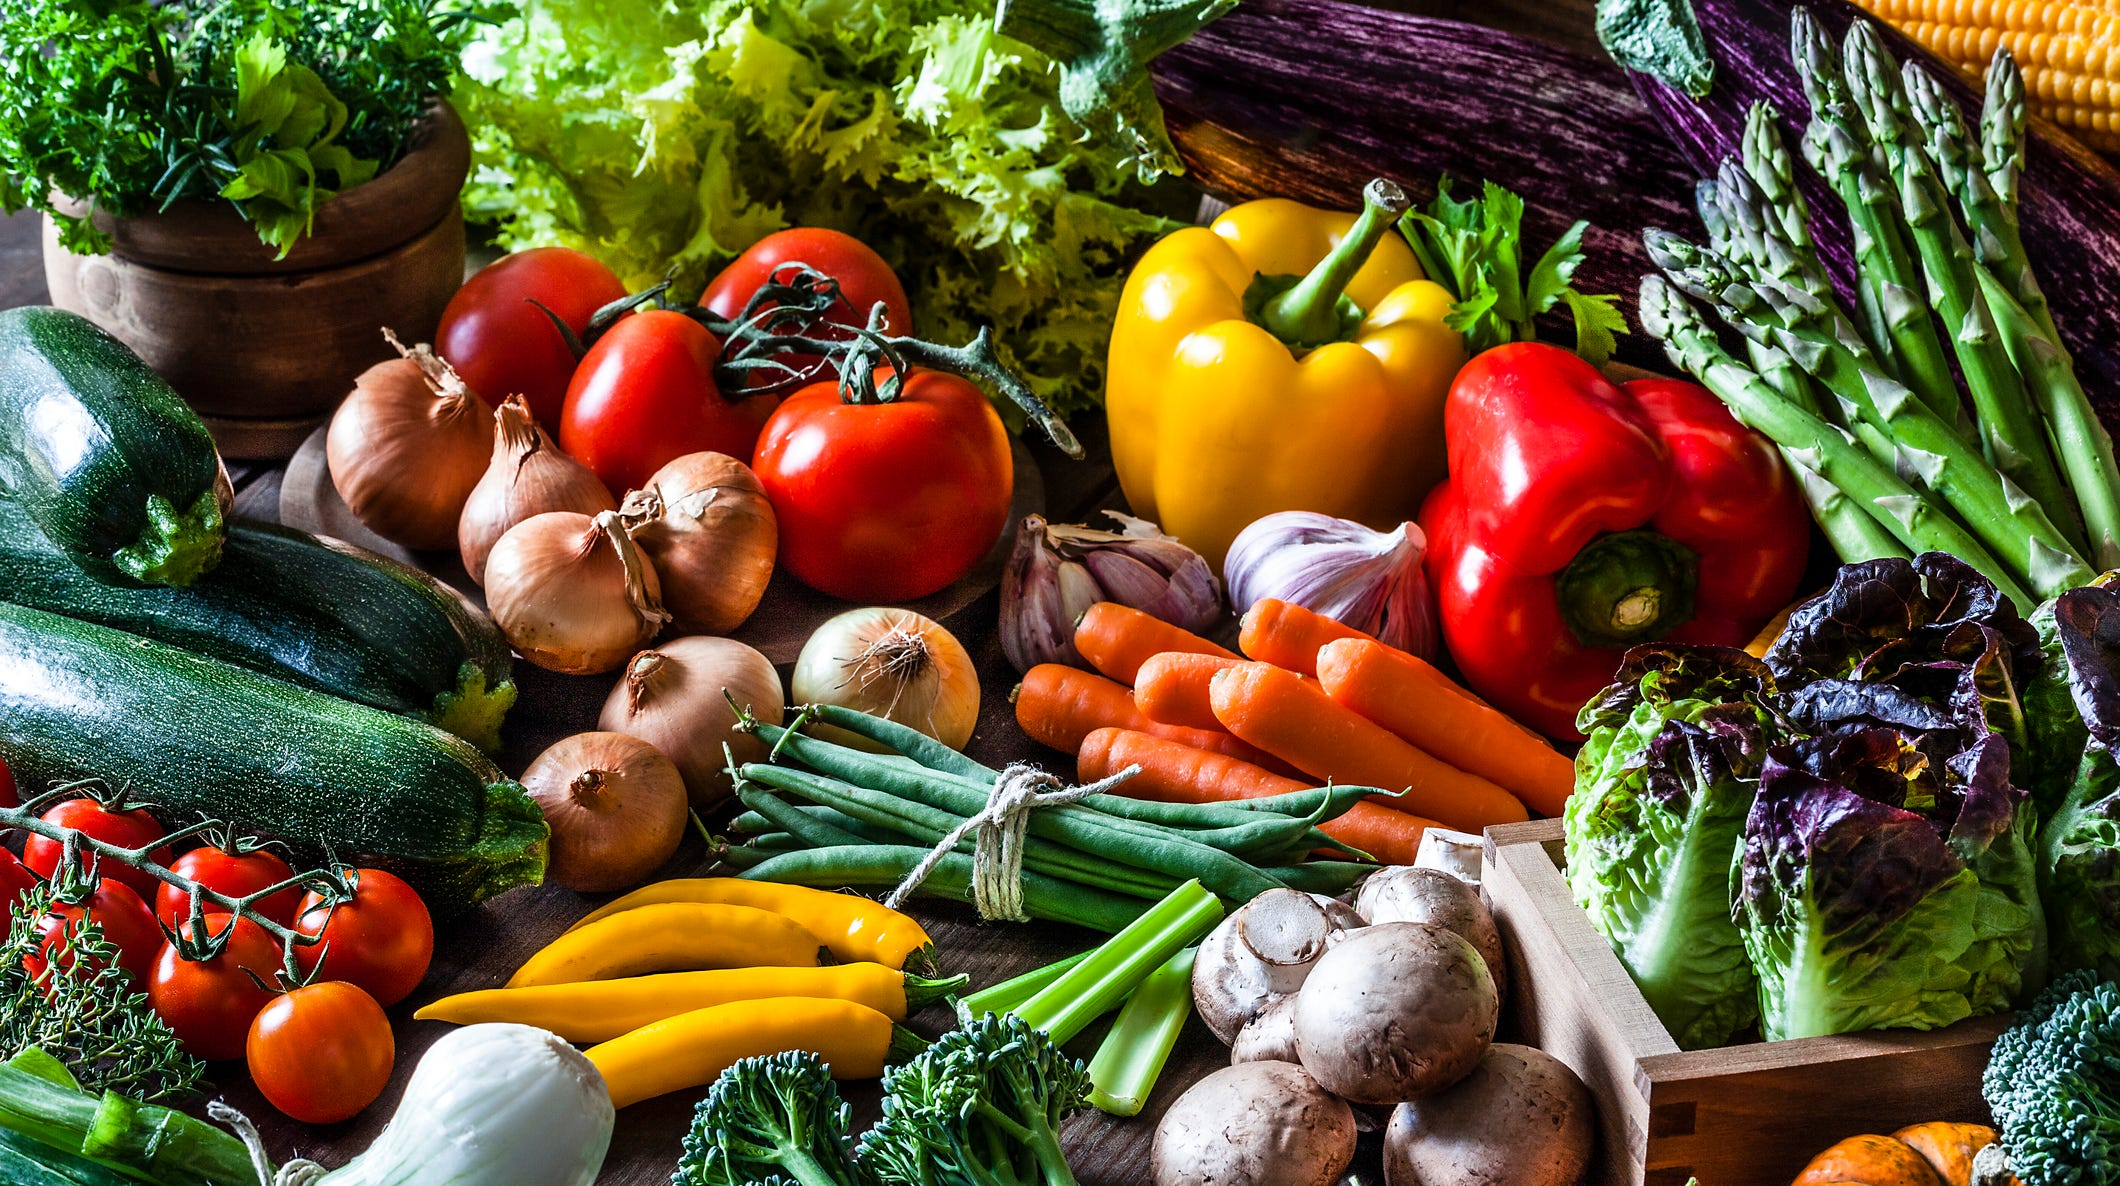 Eating Organic Food May Prevent Cancer French Study Suggests